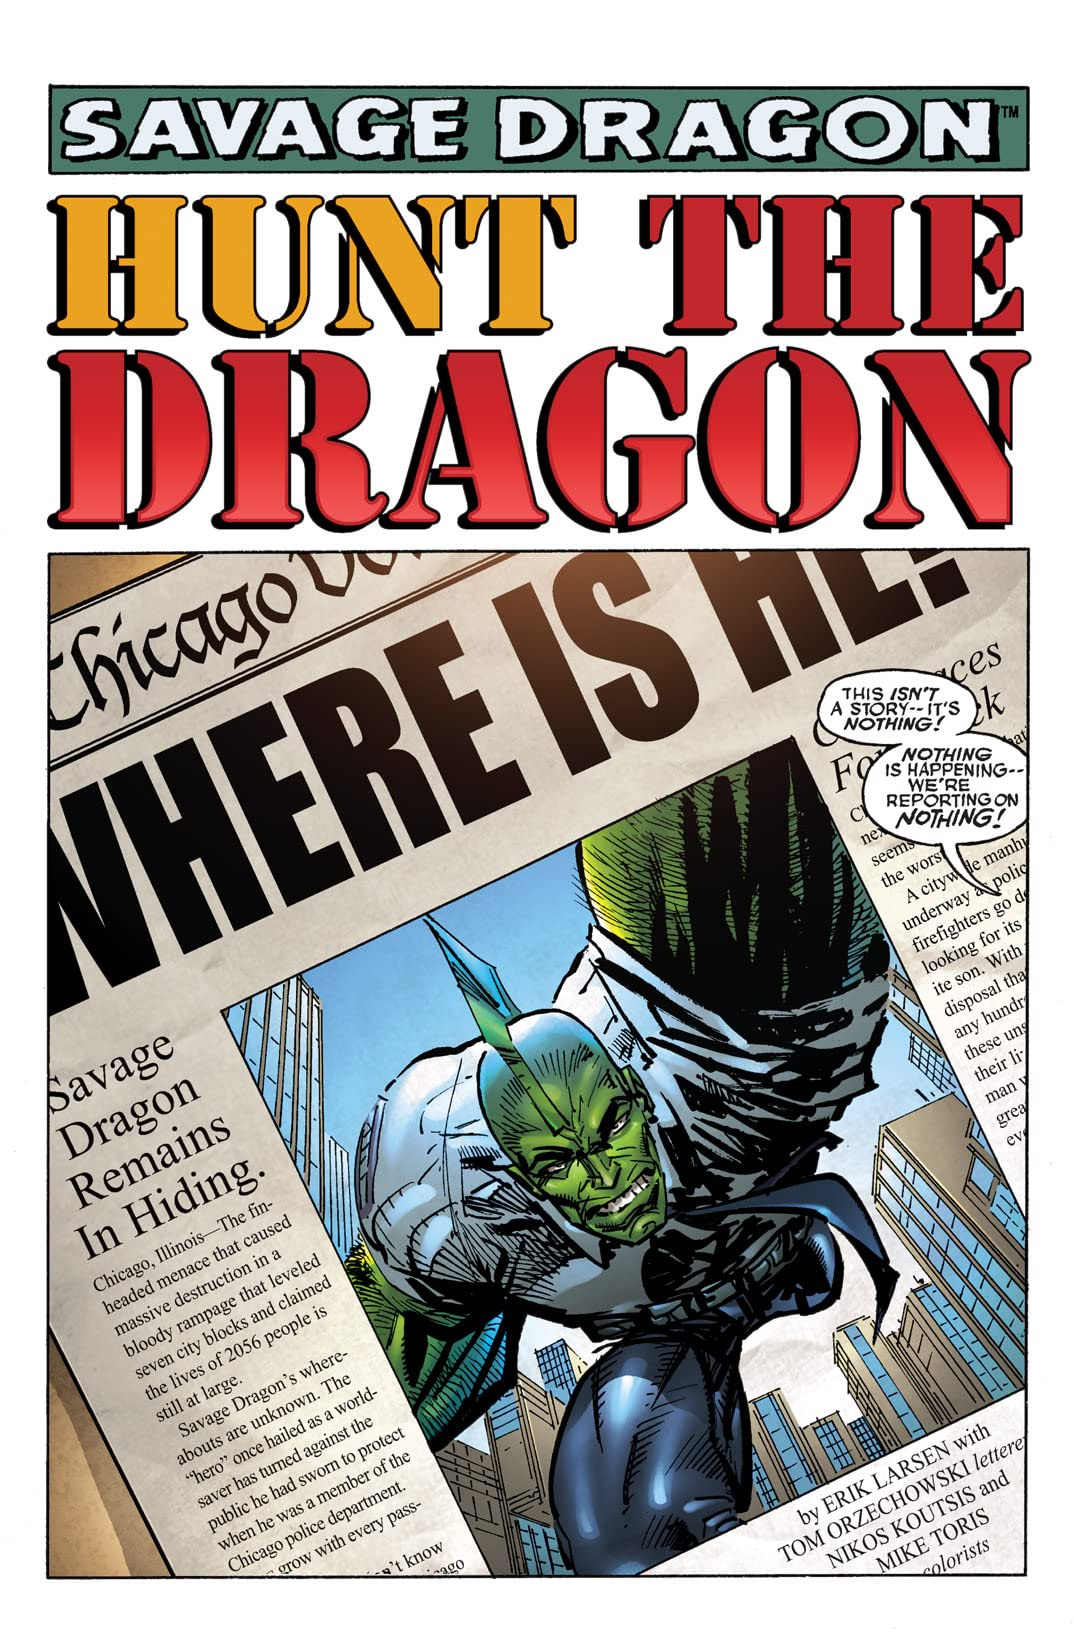 Savage Dragon #159